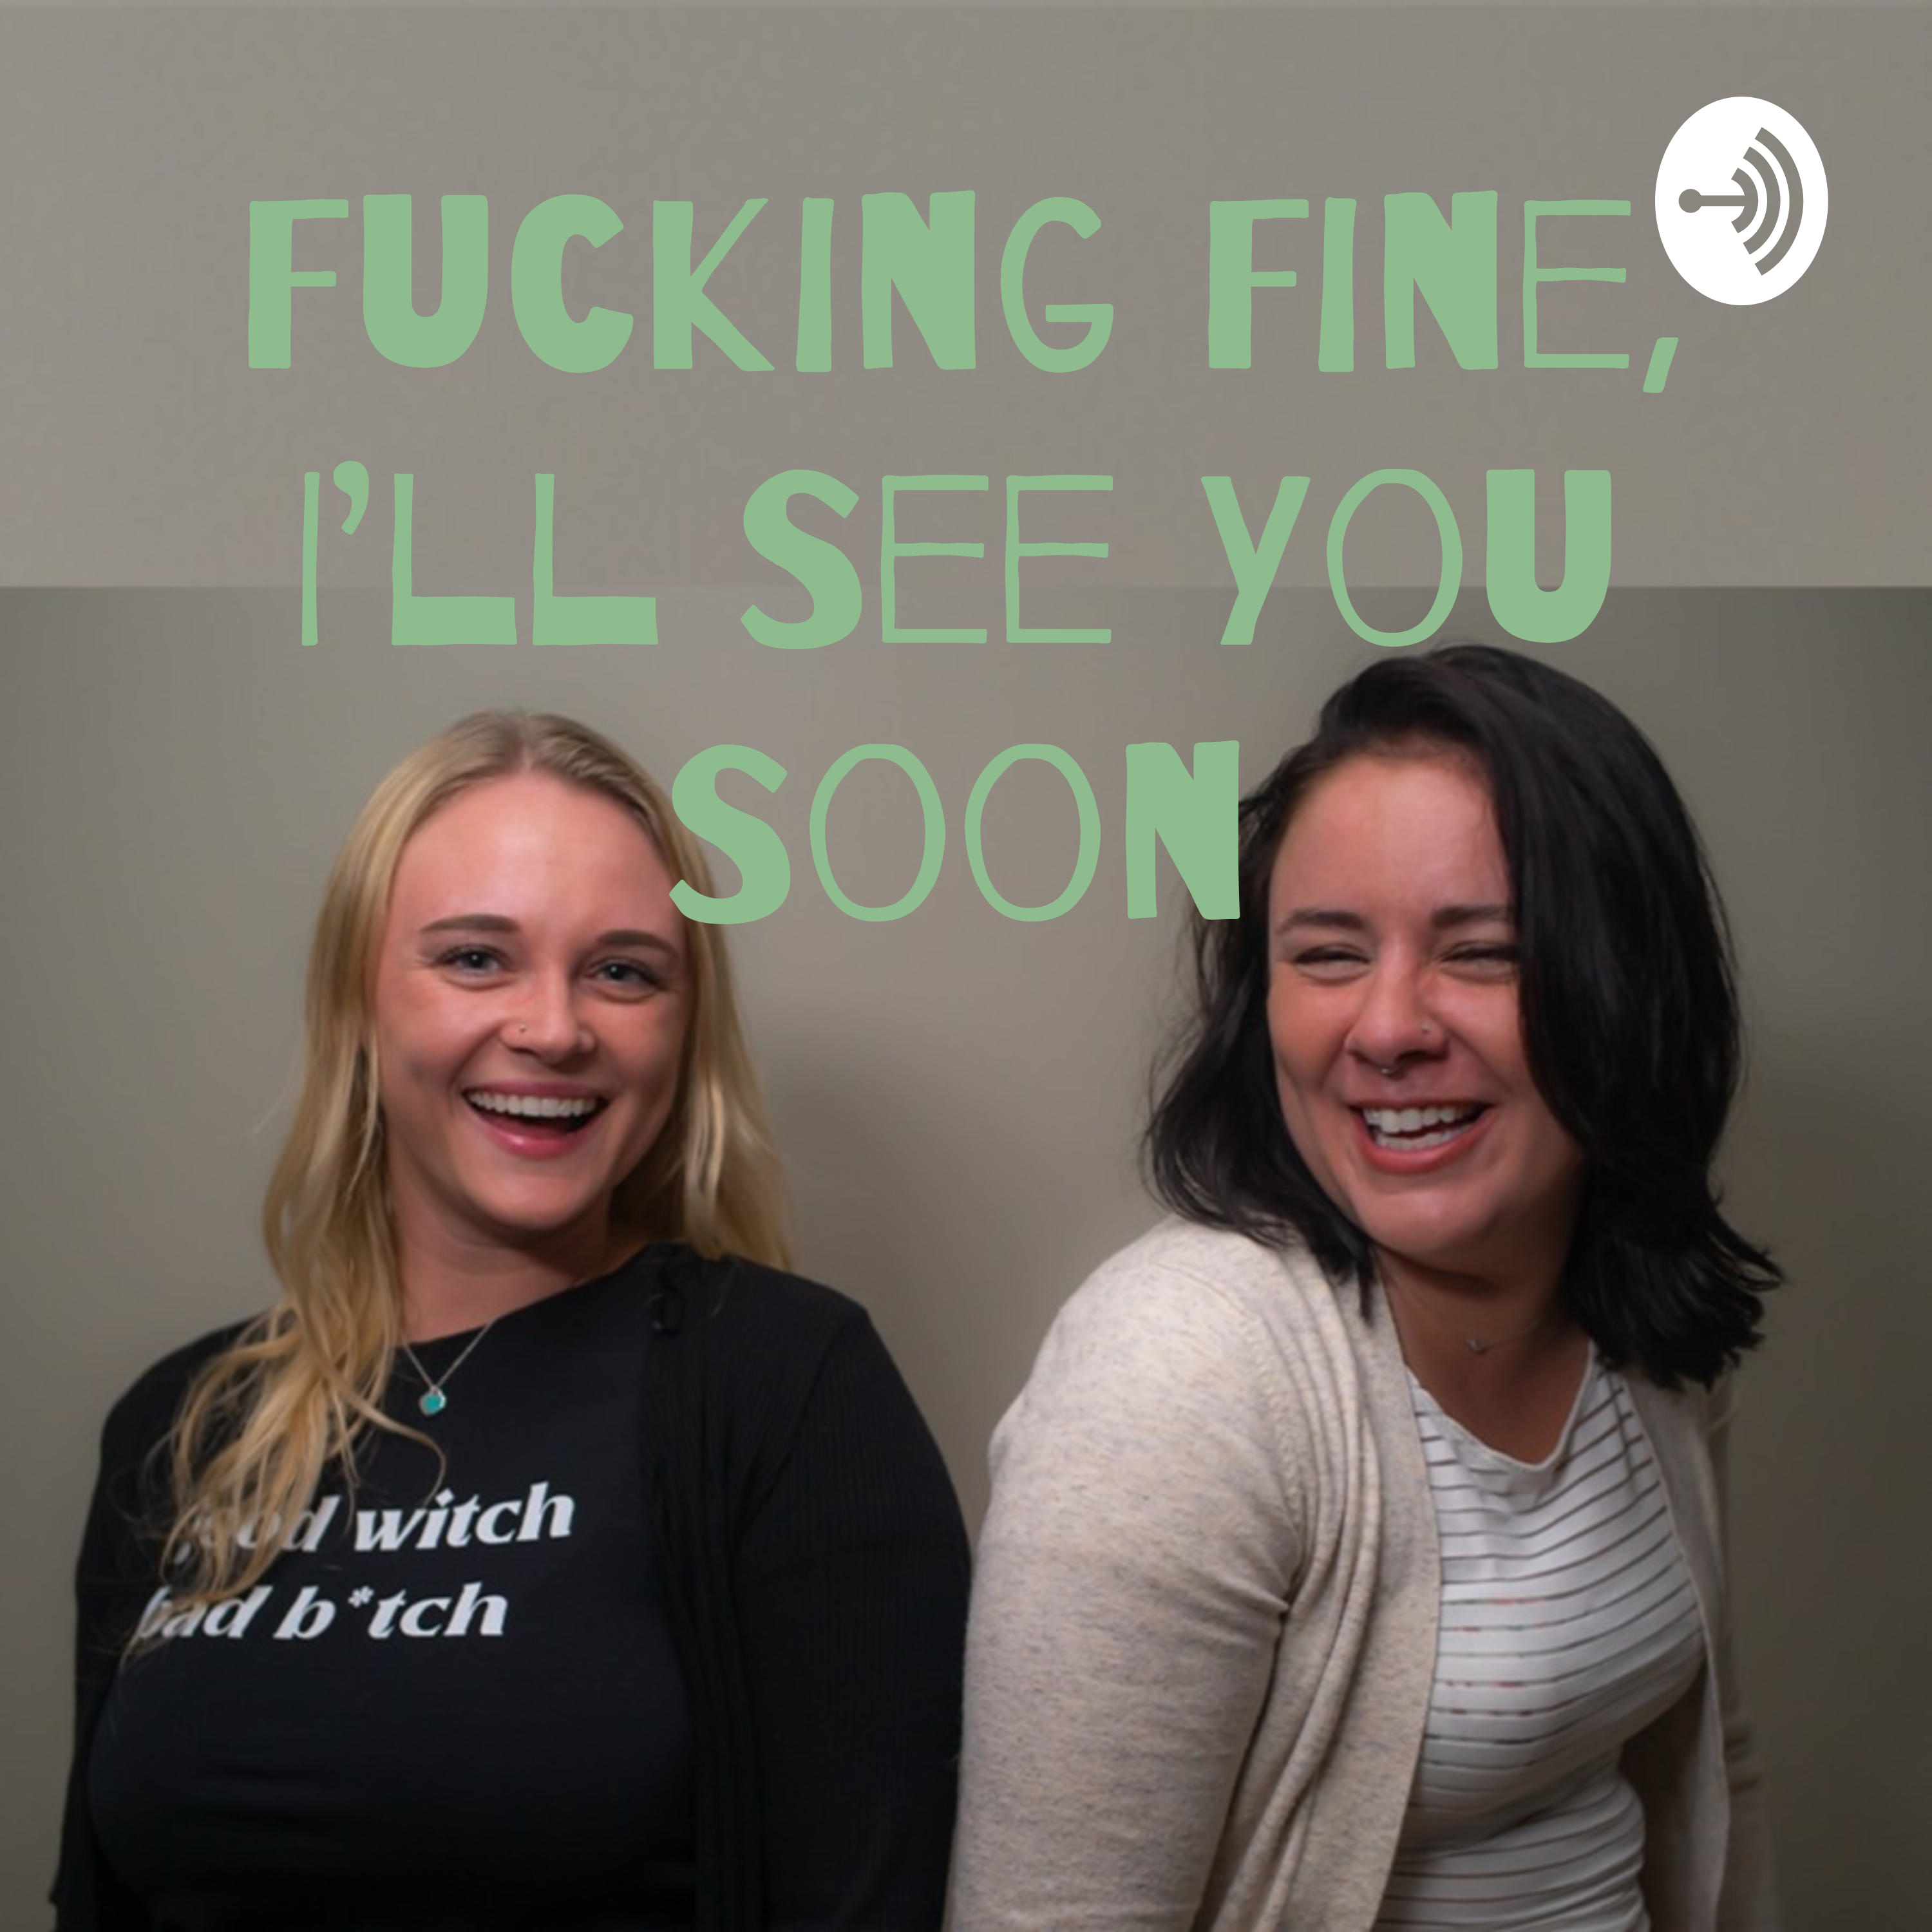 Ep. 7 - There is a VAST Difference Between Assholes and Dicks